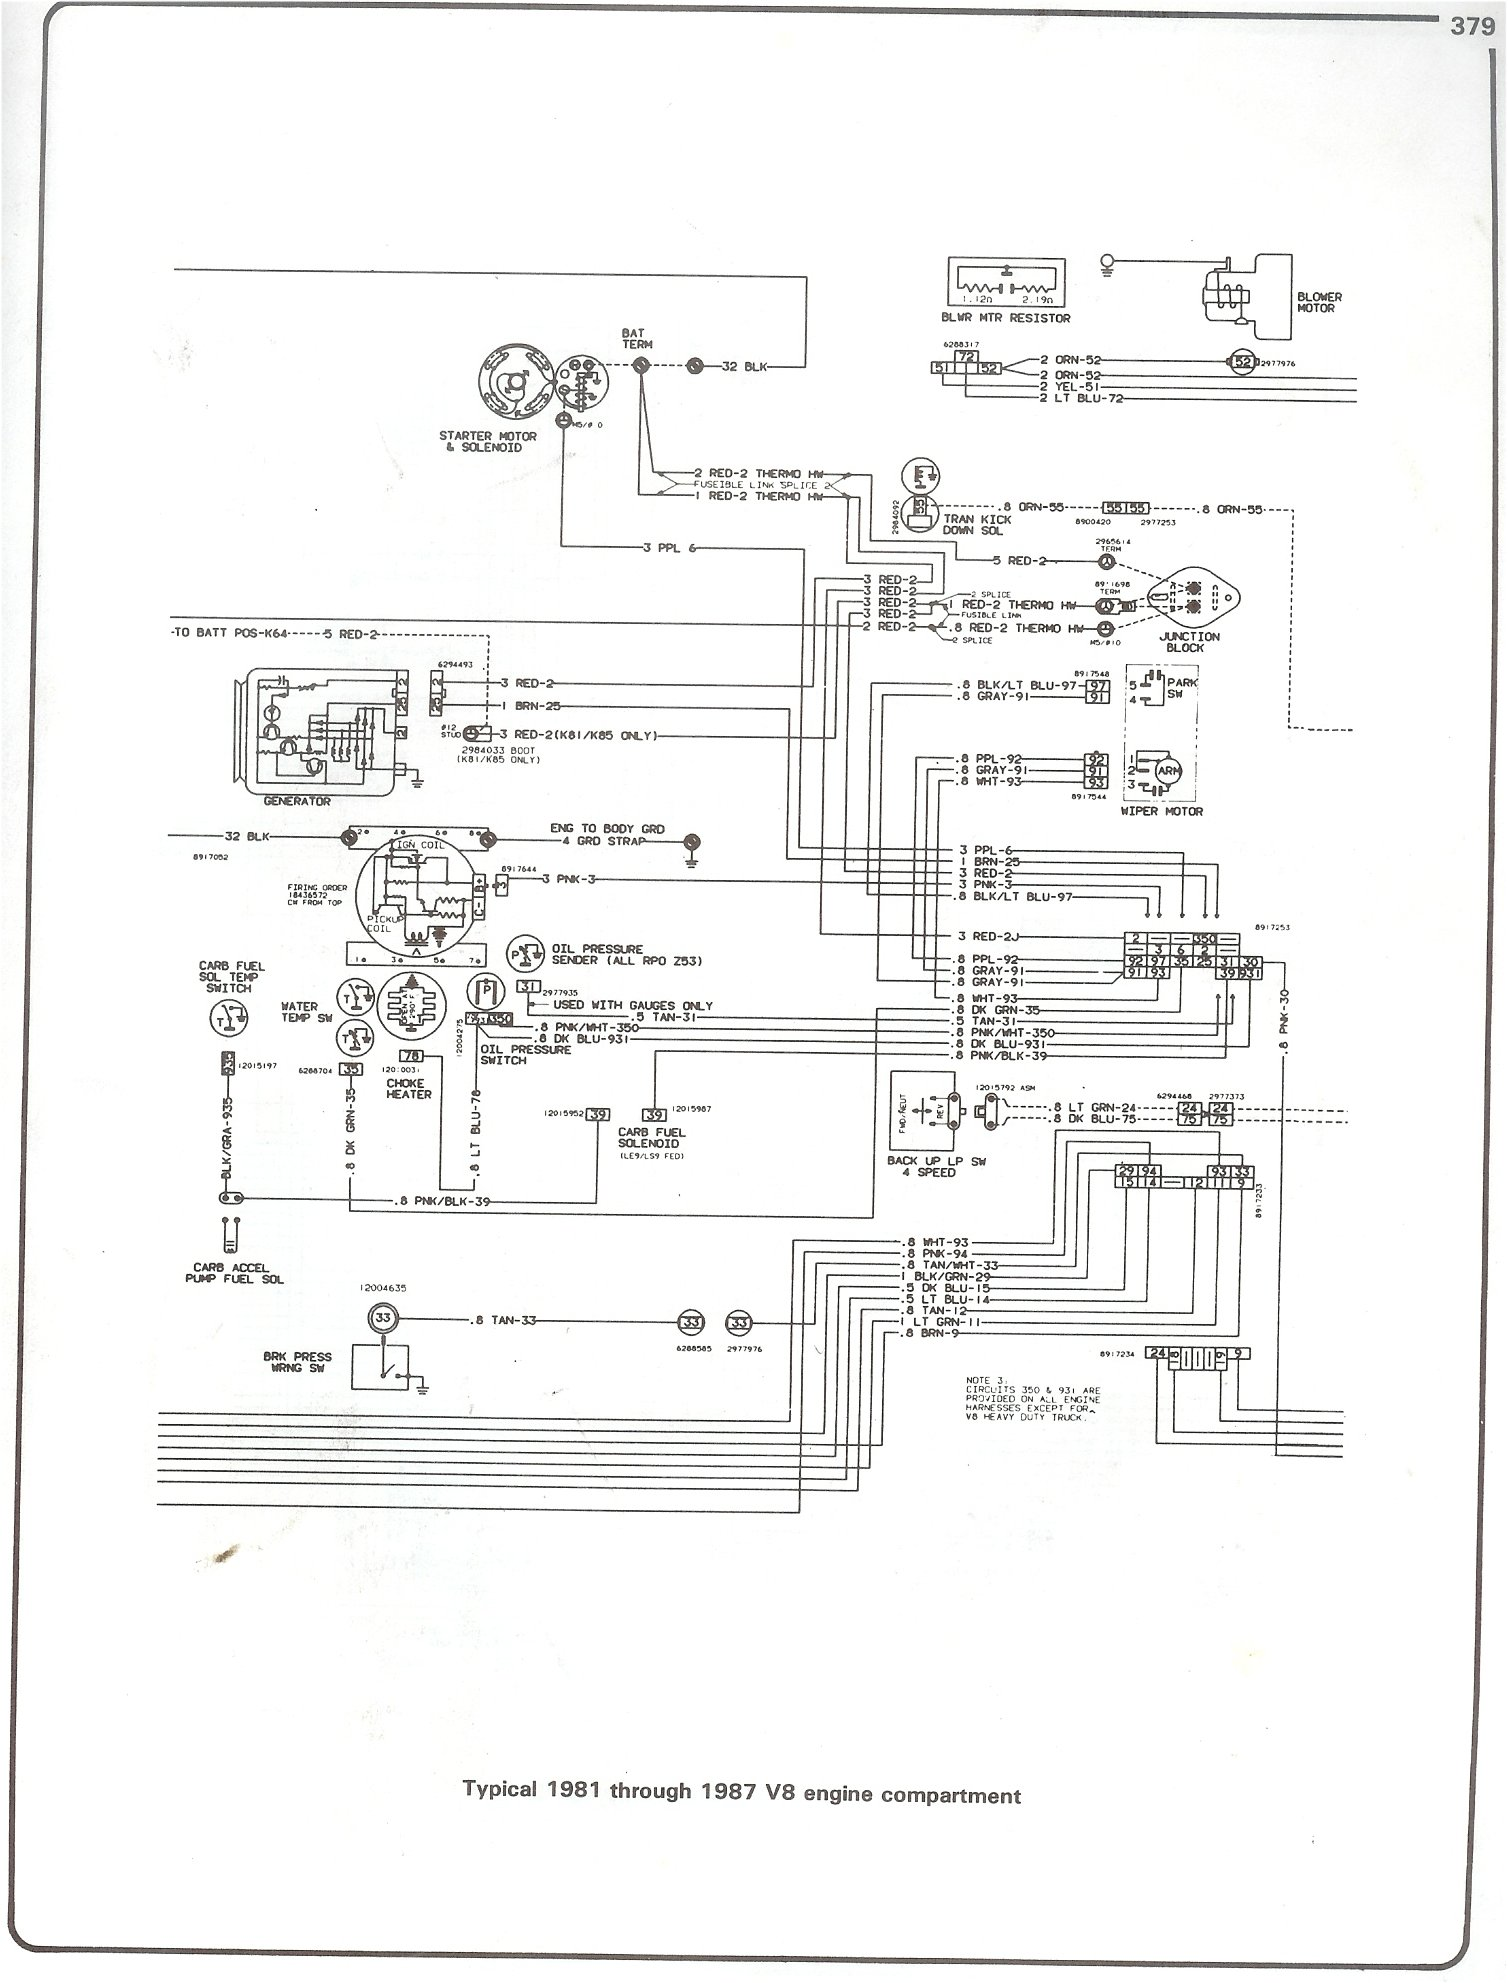 81 87_V8_engine complete 73 87 wiring diagrams wiring diagram for 1983 chevy pickup at n-0.co